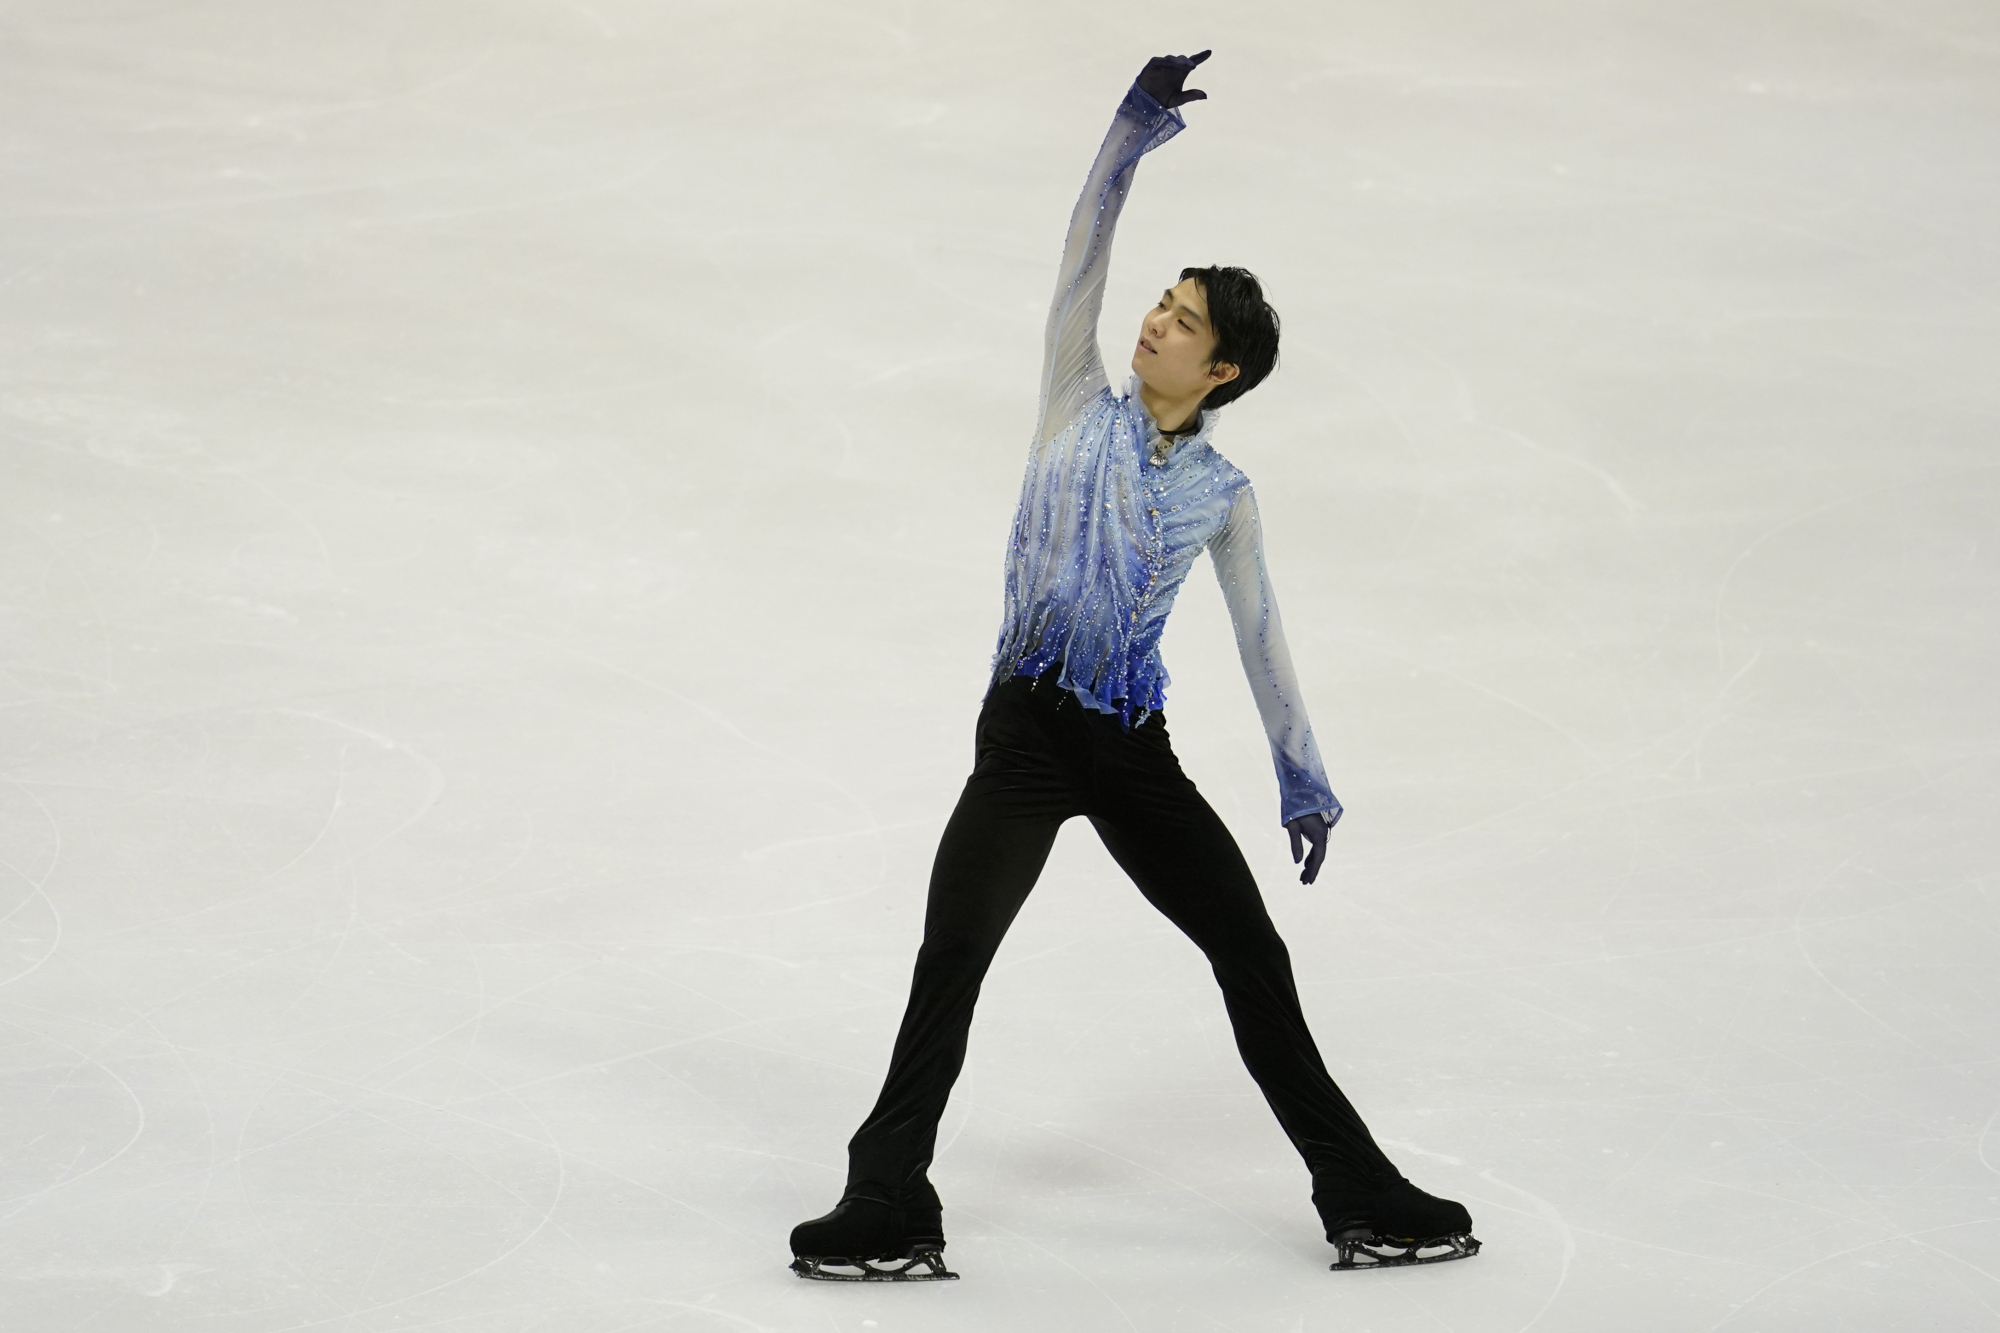 Yuzuru Hanyu, who won the NHK Trophy last week, displayed his communications skills in dealing with the media in Sapporo. | AP